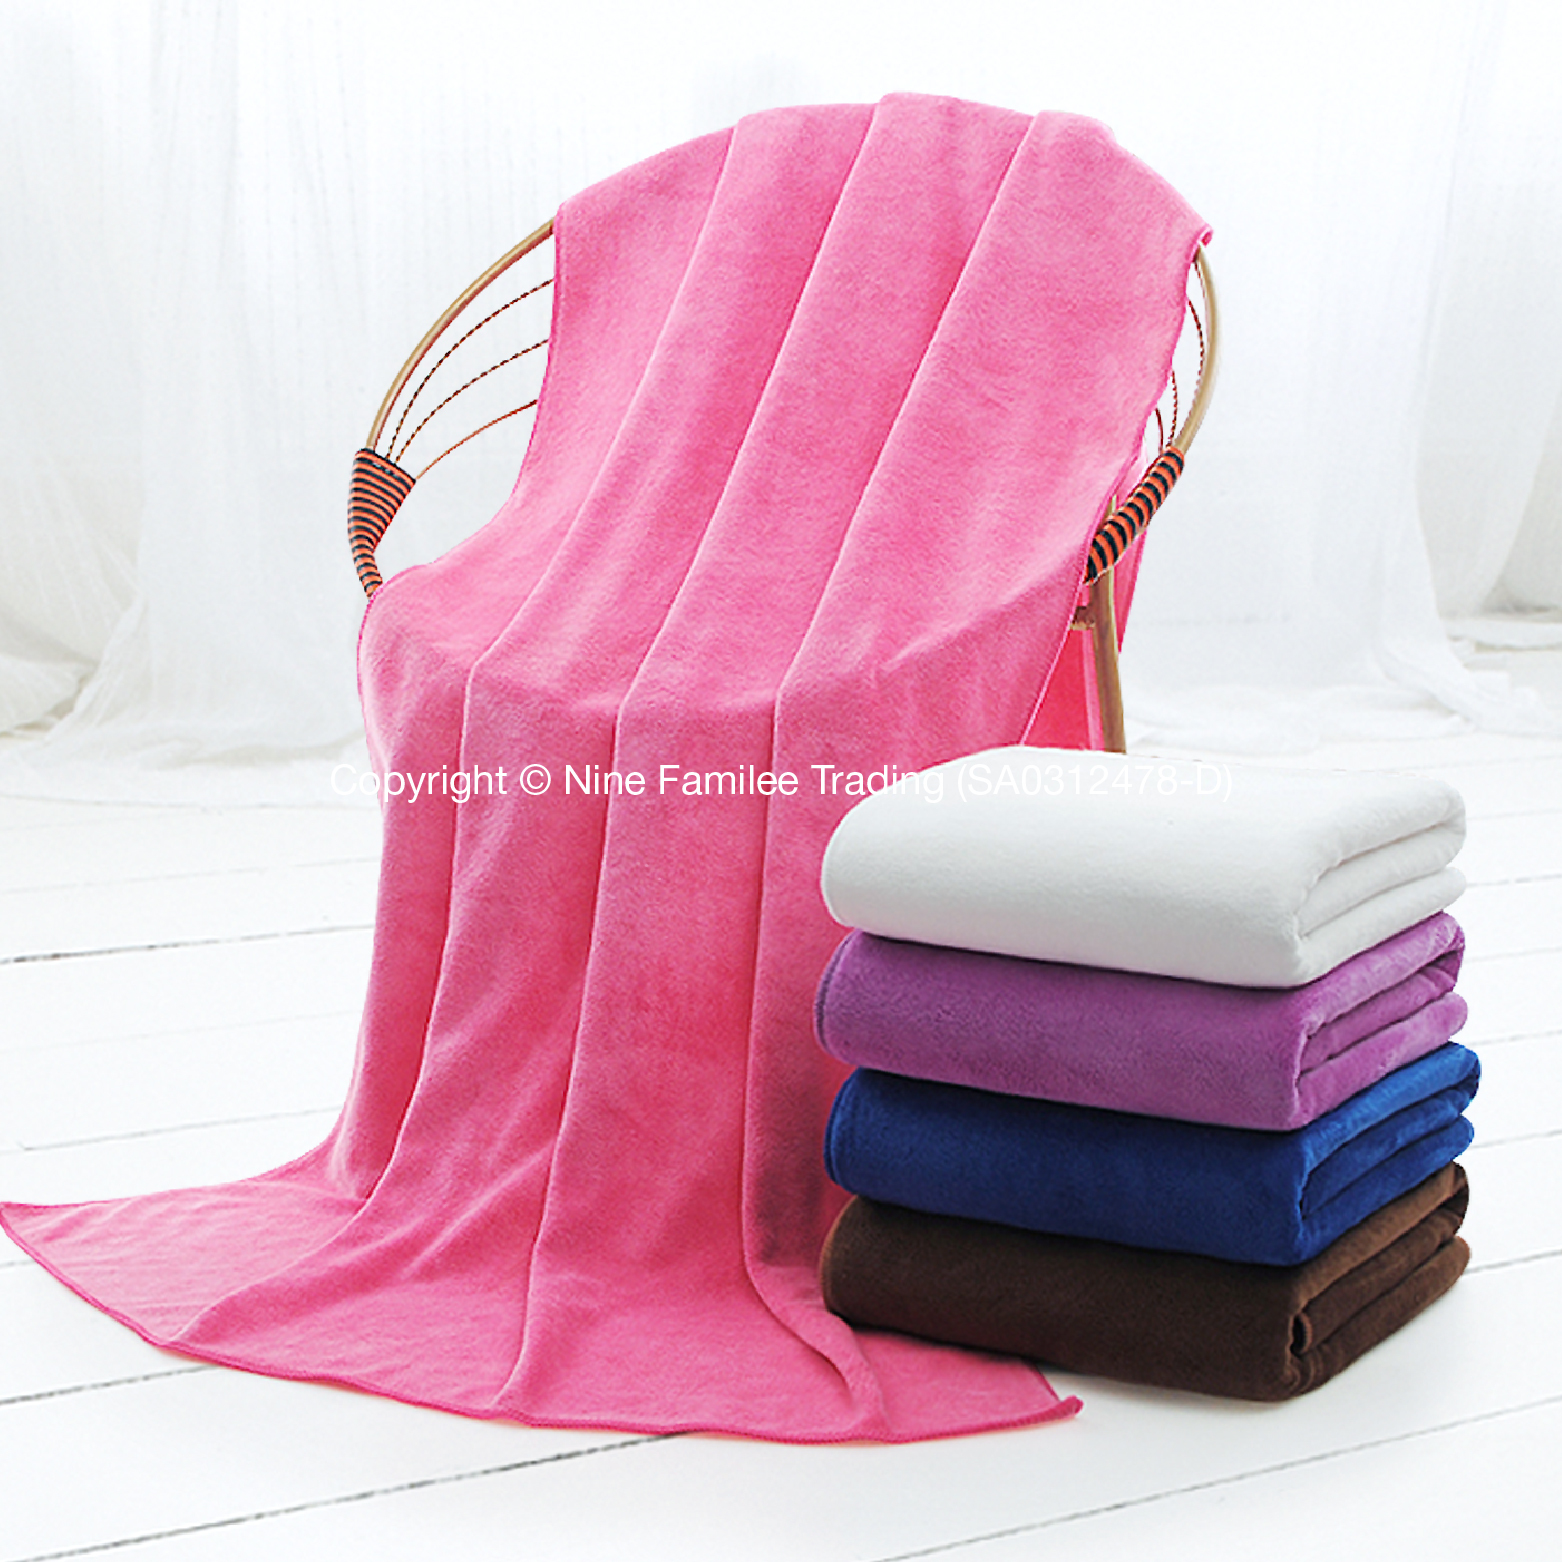 Products - Microfibre Bath Towel-01.jpg